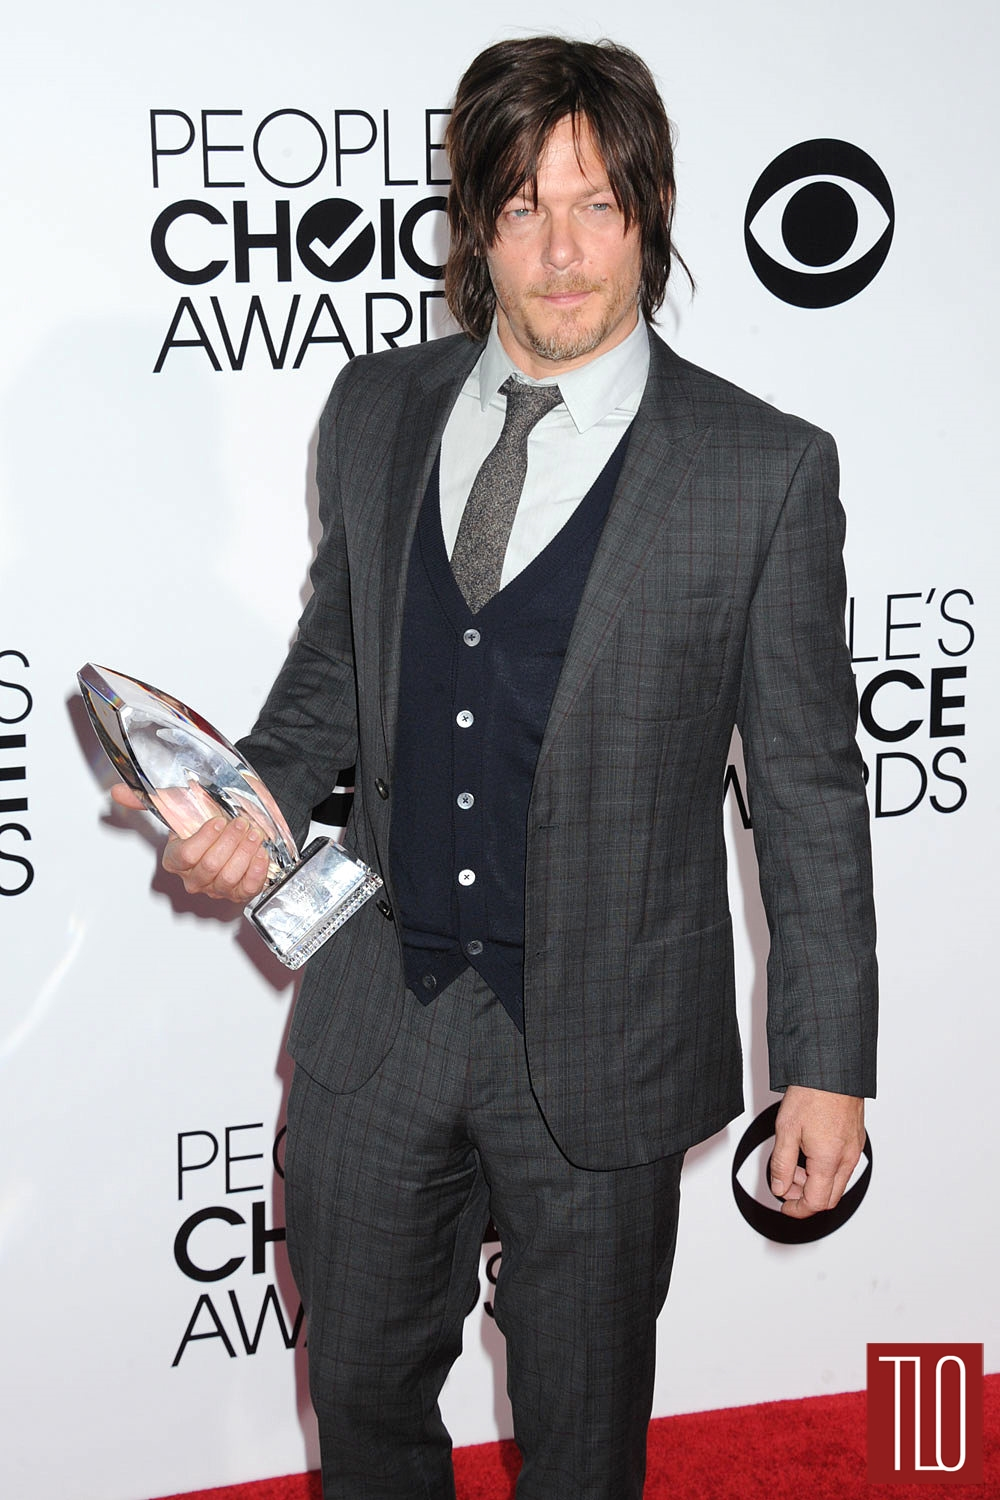 Norman-Reedus-Hugo-Boss-People-Choice-Awards-Tom-Lorenzo-Site-1.jpg